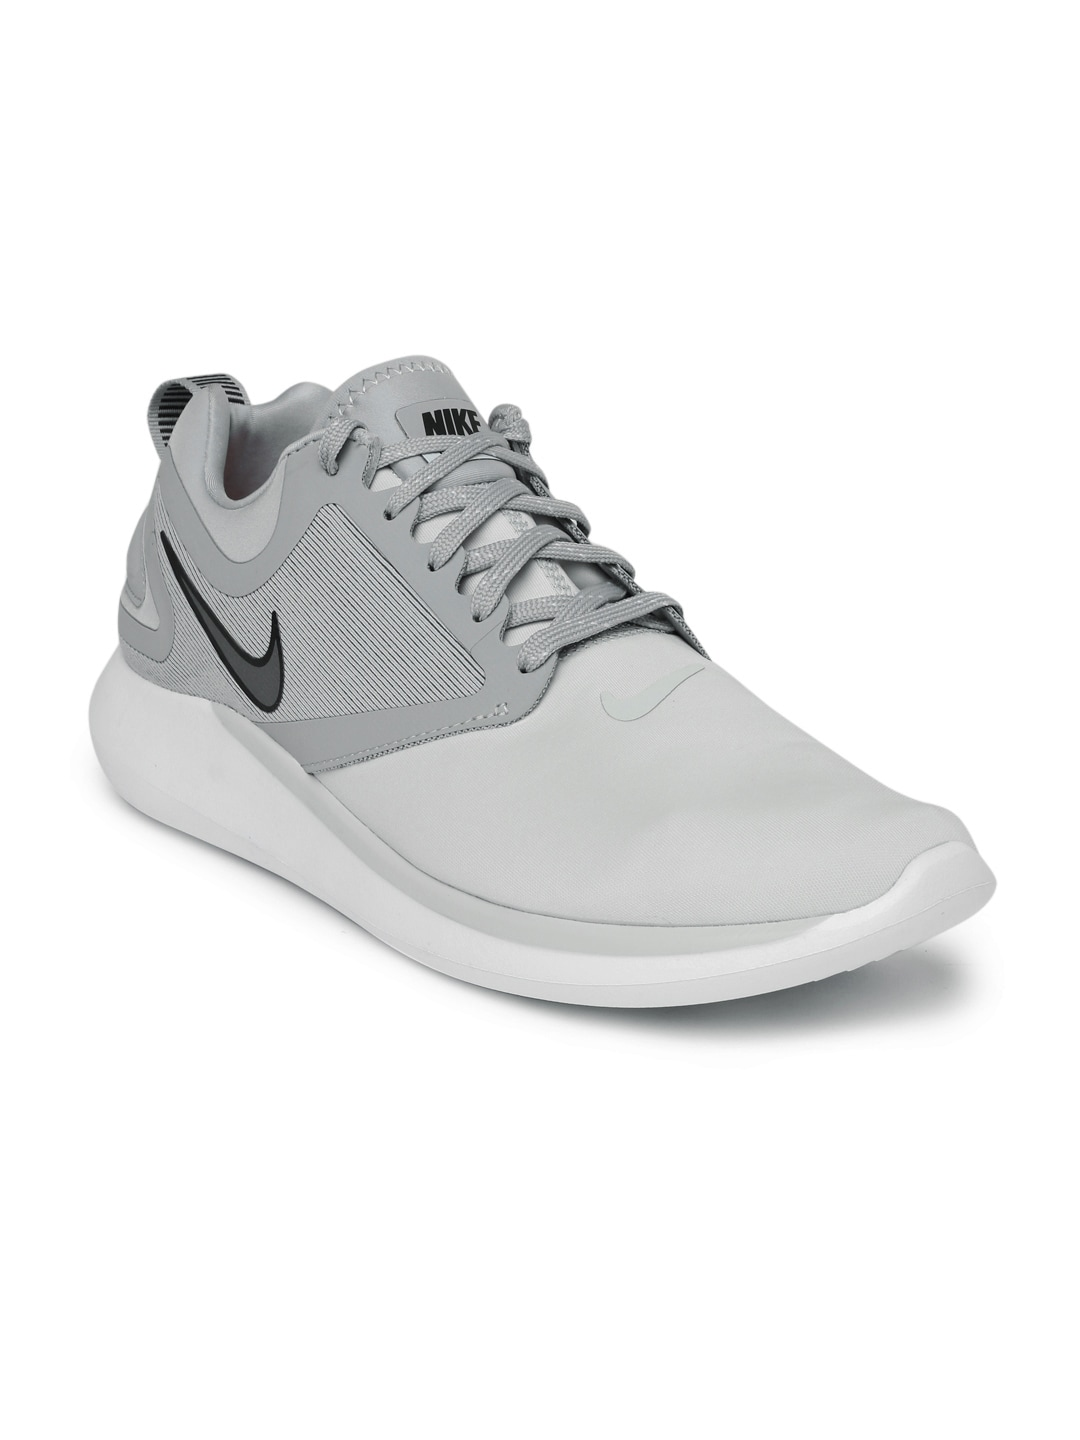 a2b279210d4 Sports Shoes for Men - Buy Men Sports Shoes Online in India - Myntra